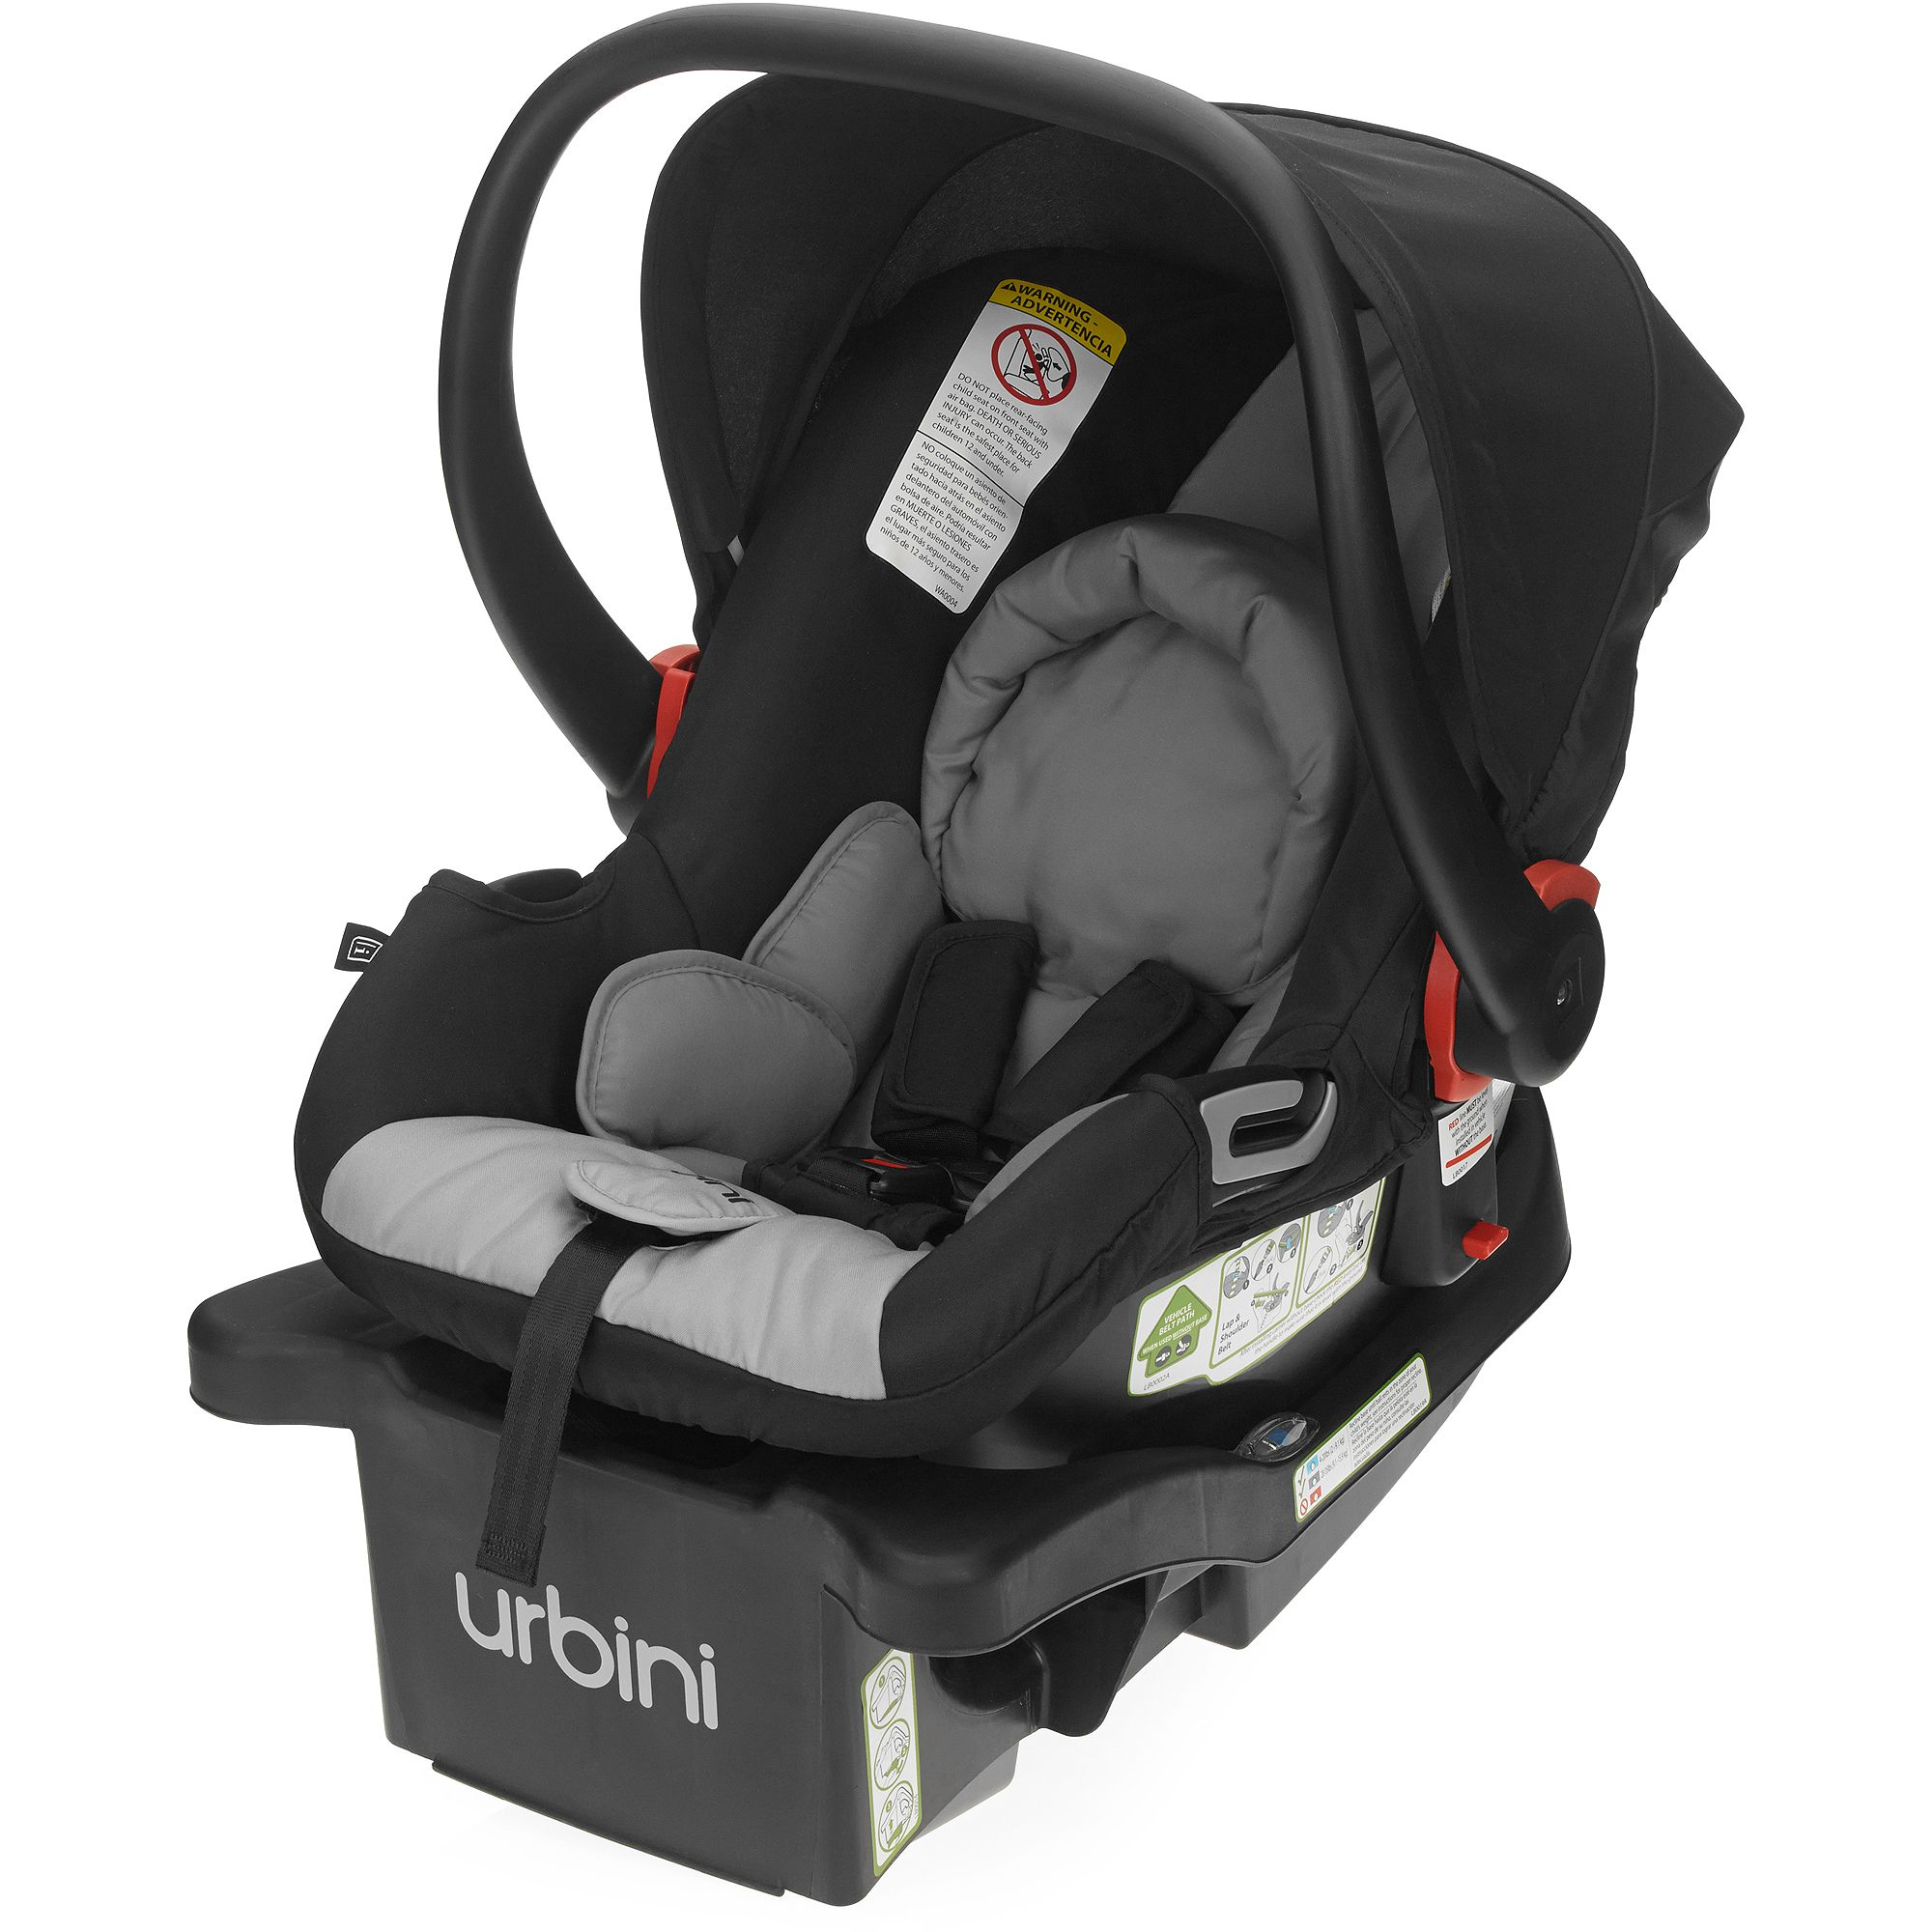 Urbini Petal Infant Car Seat for Sale | Baby Gears Outlet ...